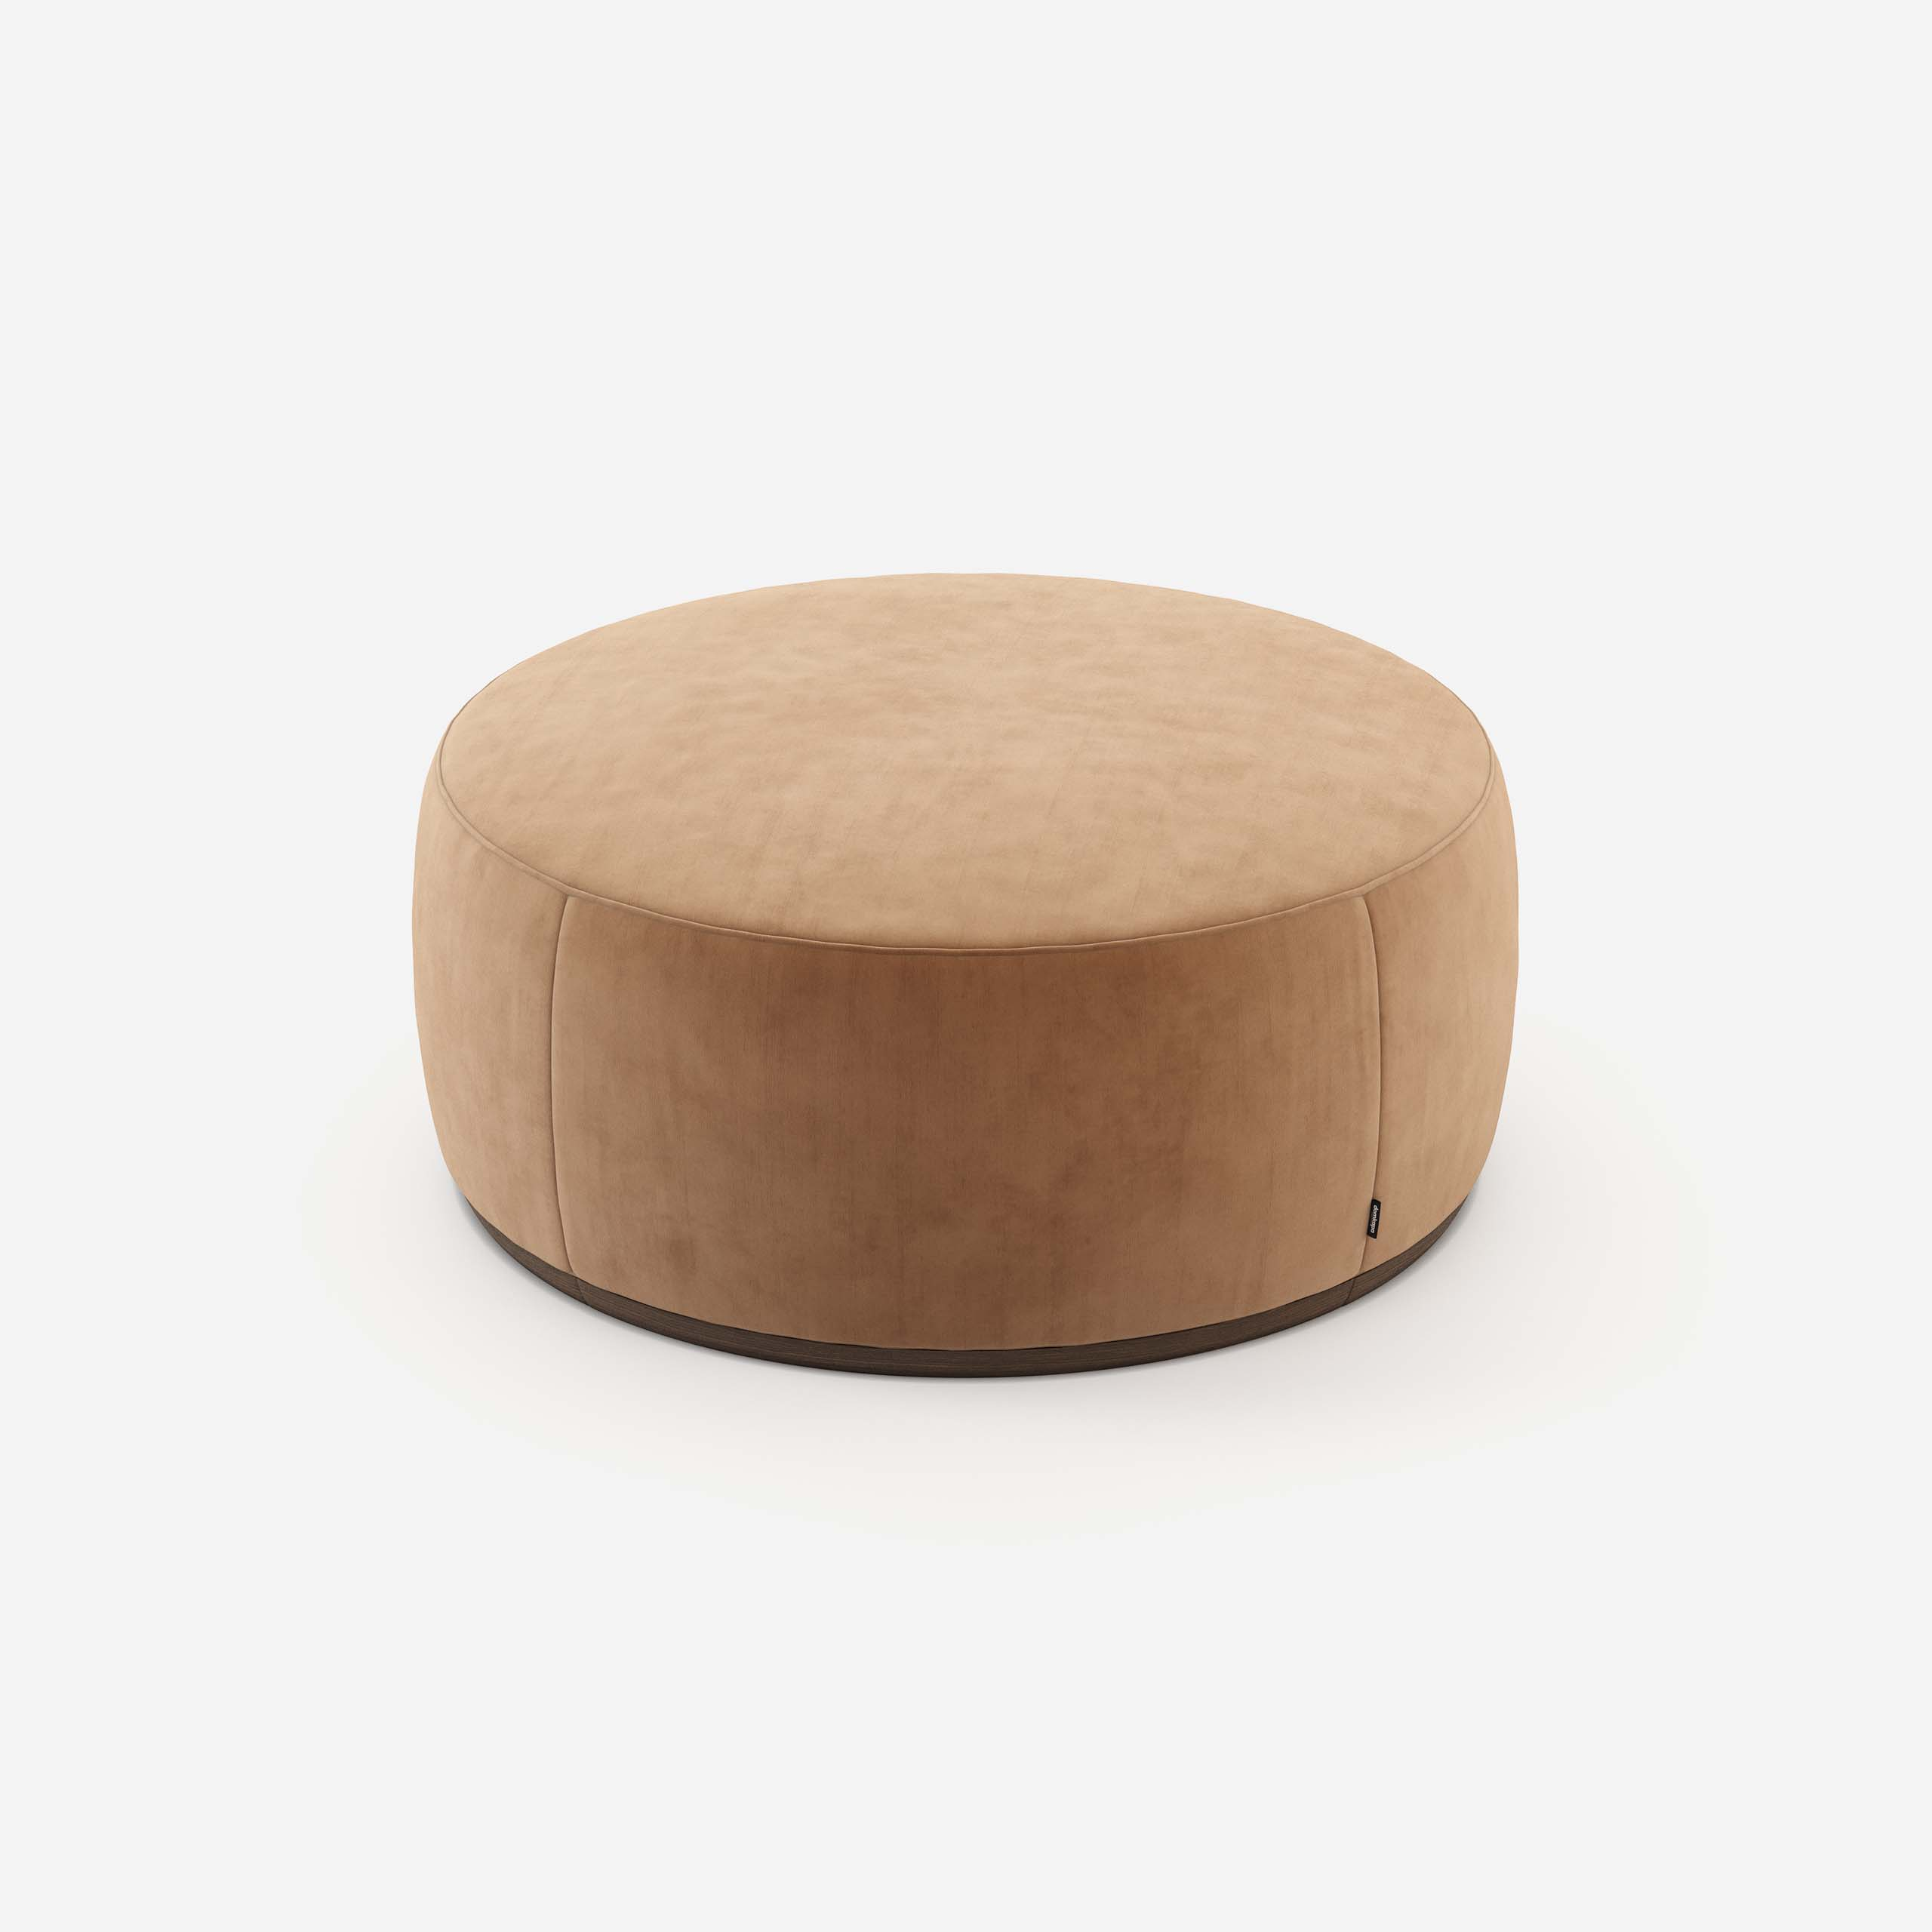 rachel-pouf-big-domkapa-new-collection-2021-home-decor